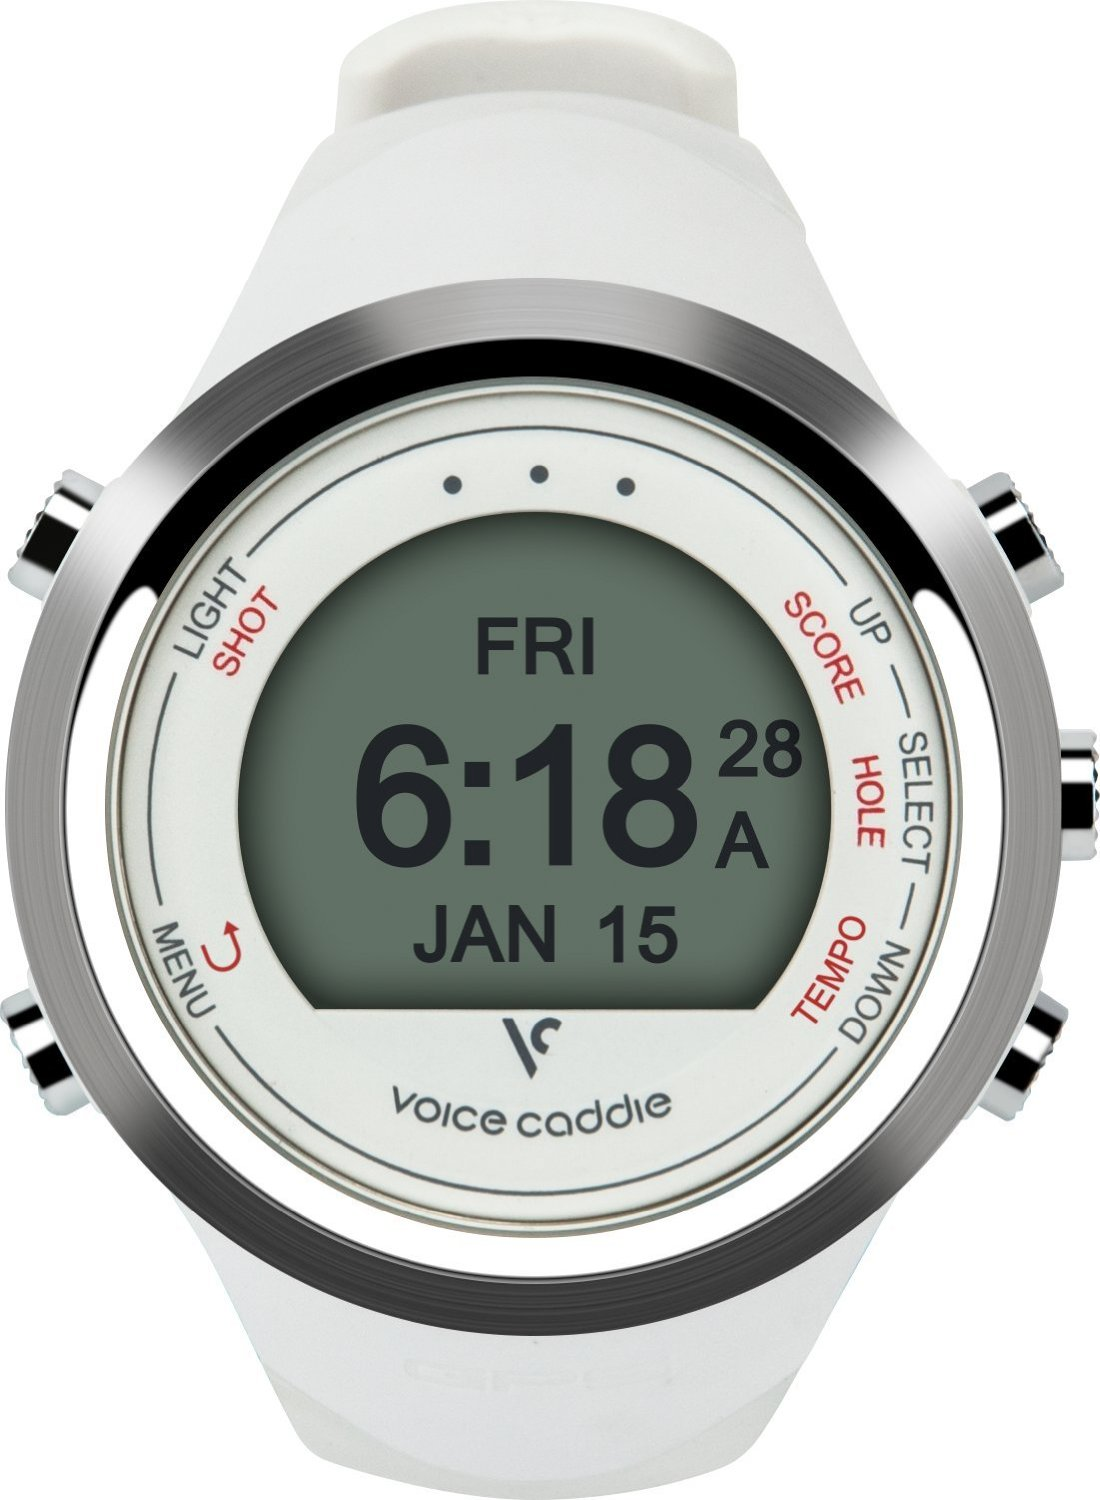 Voice Caddie T1 Hybrid Golf GPS Watches